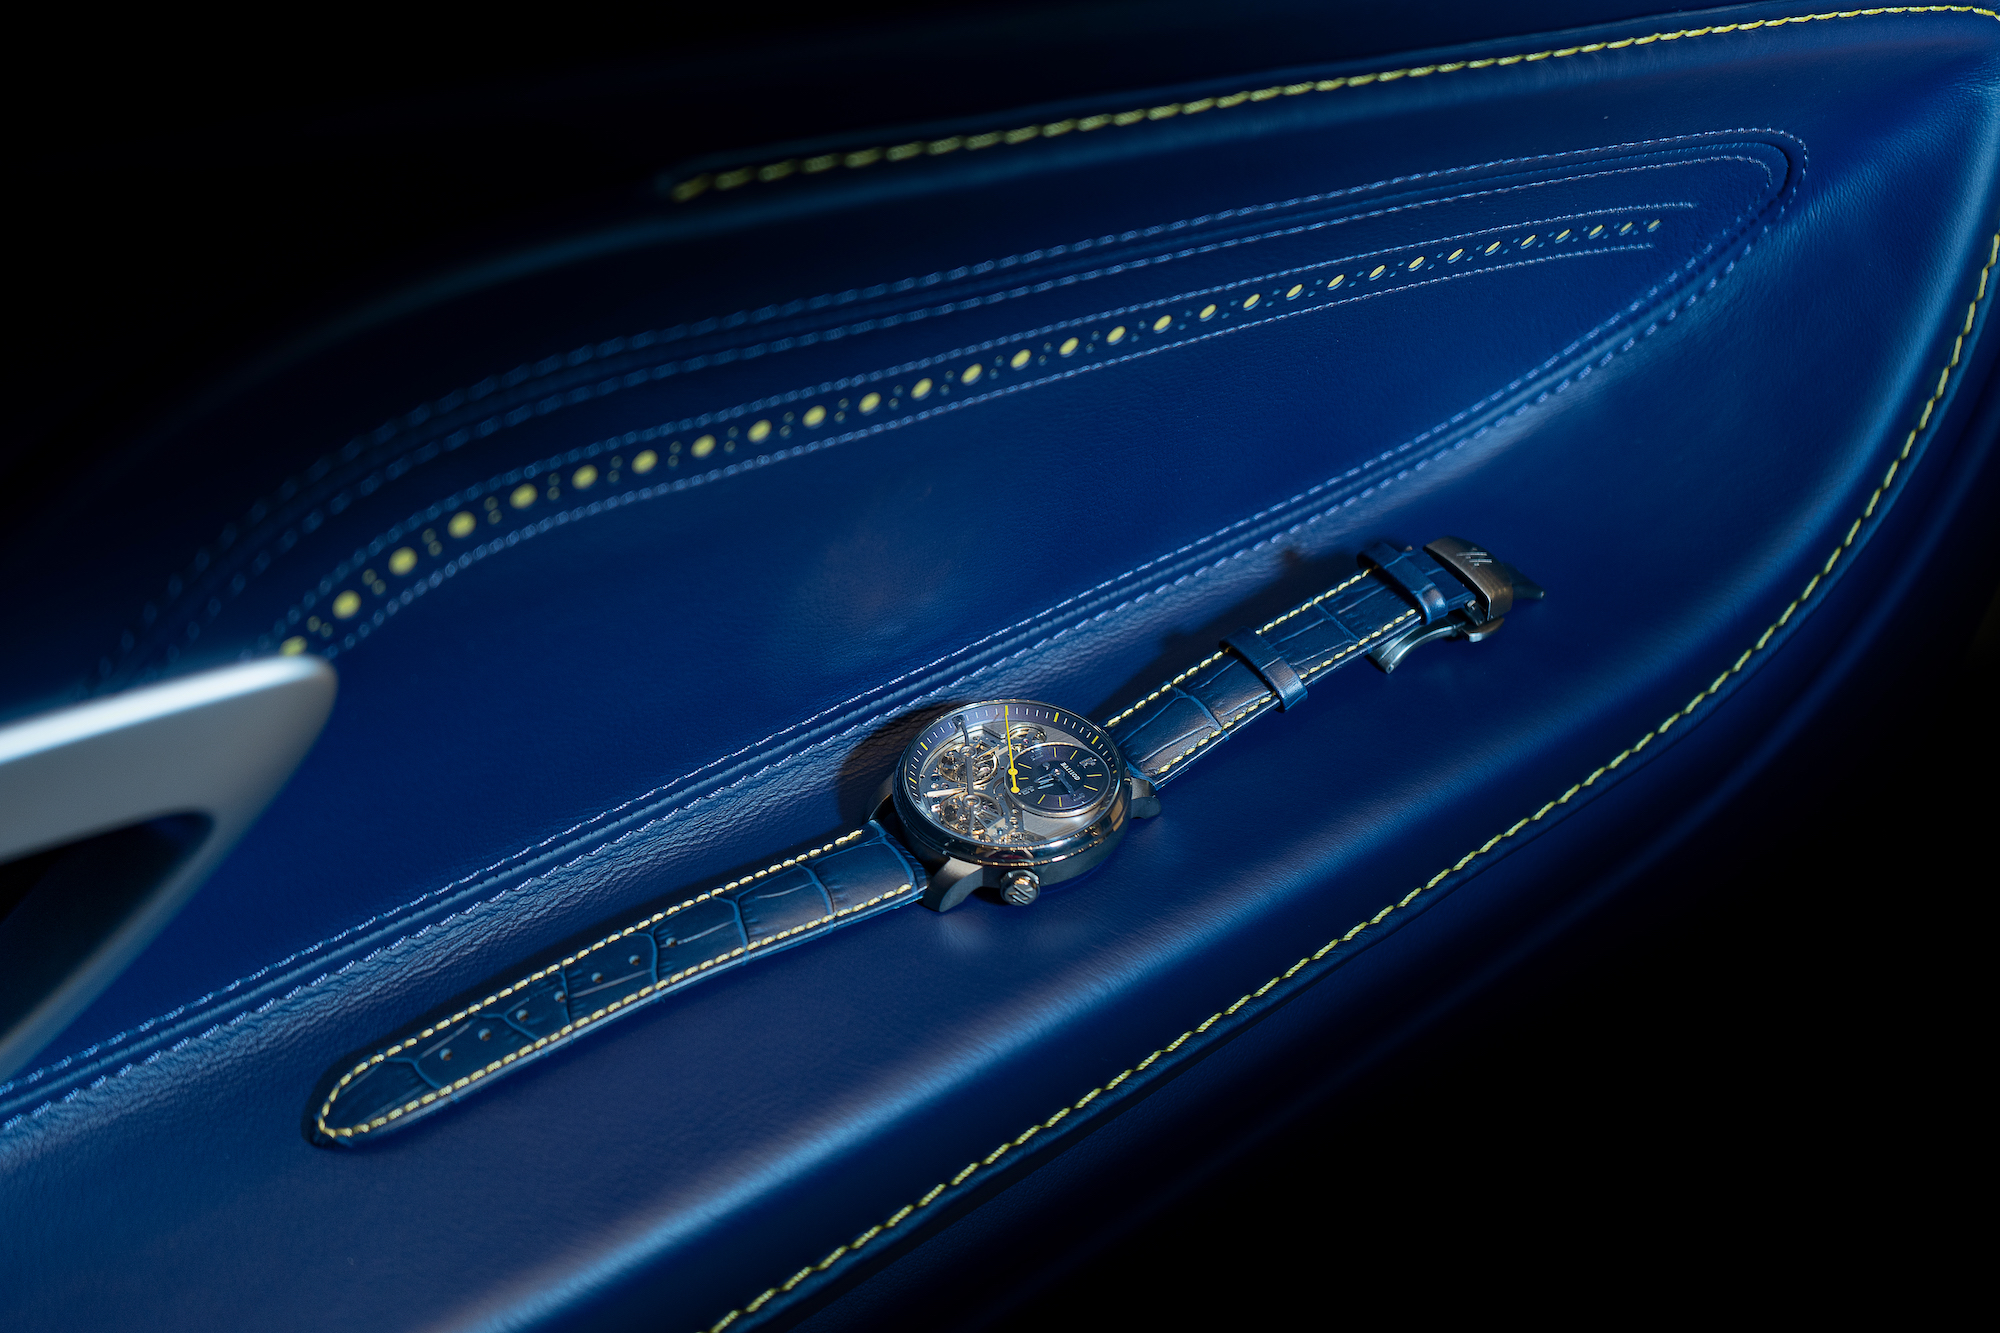 When a watch gives birth to an Aston Martin